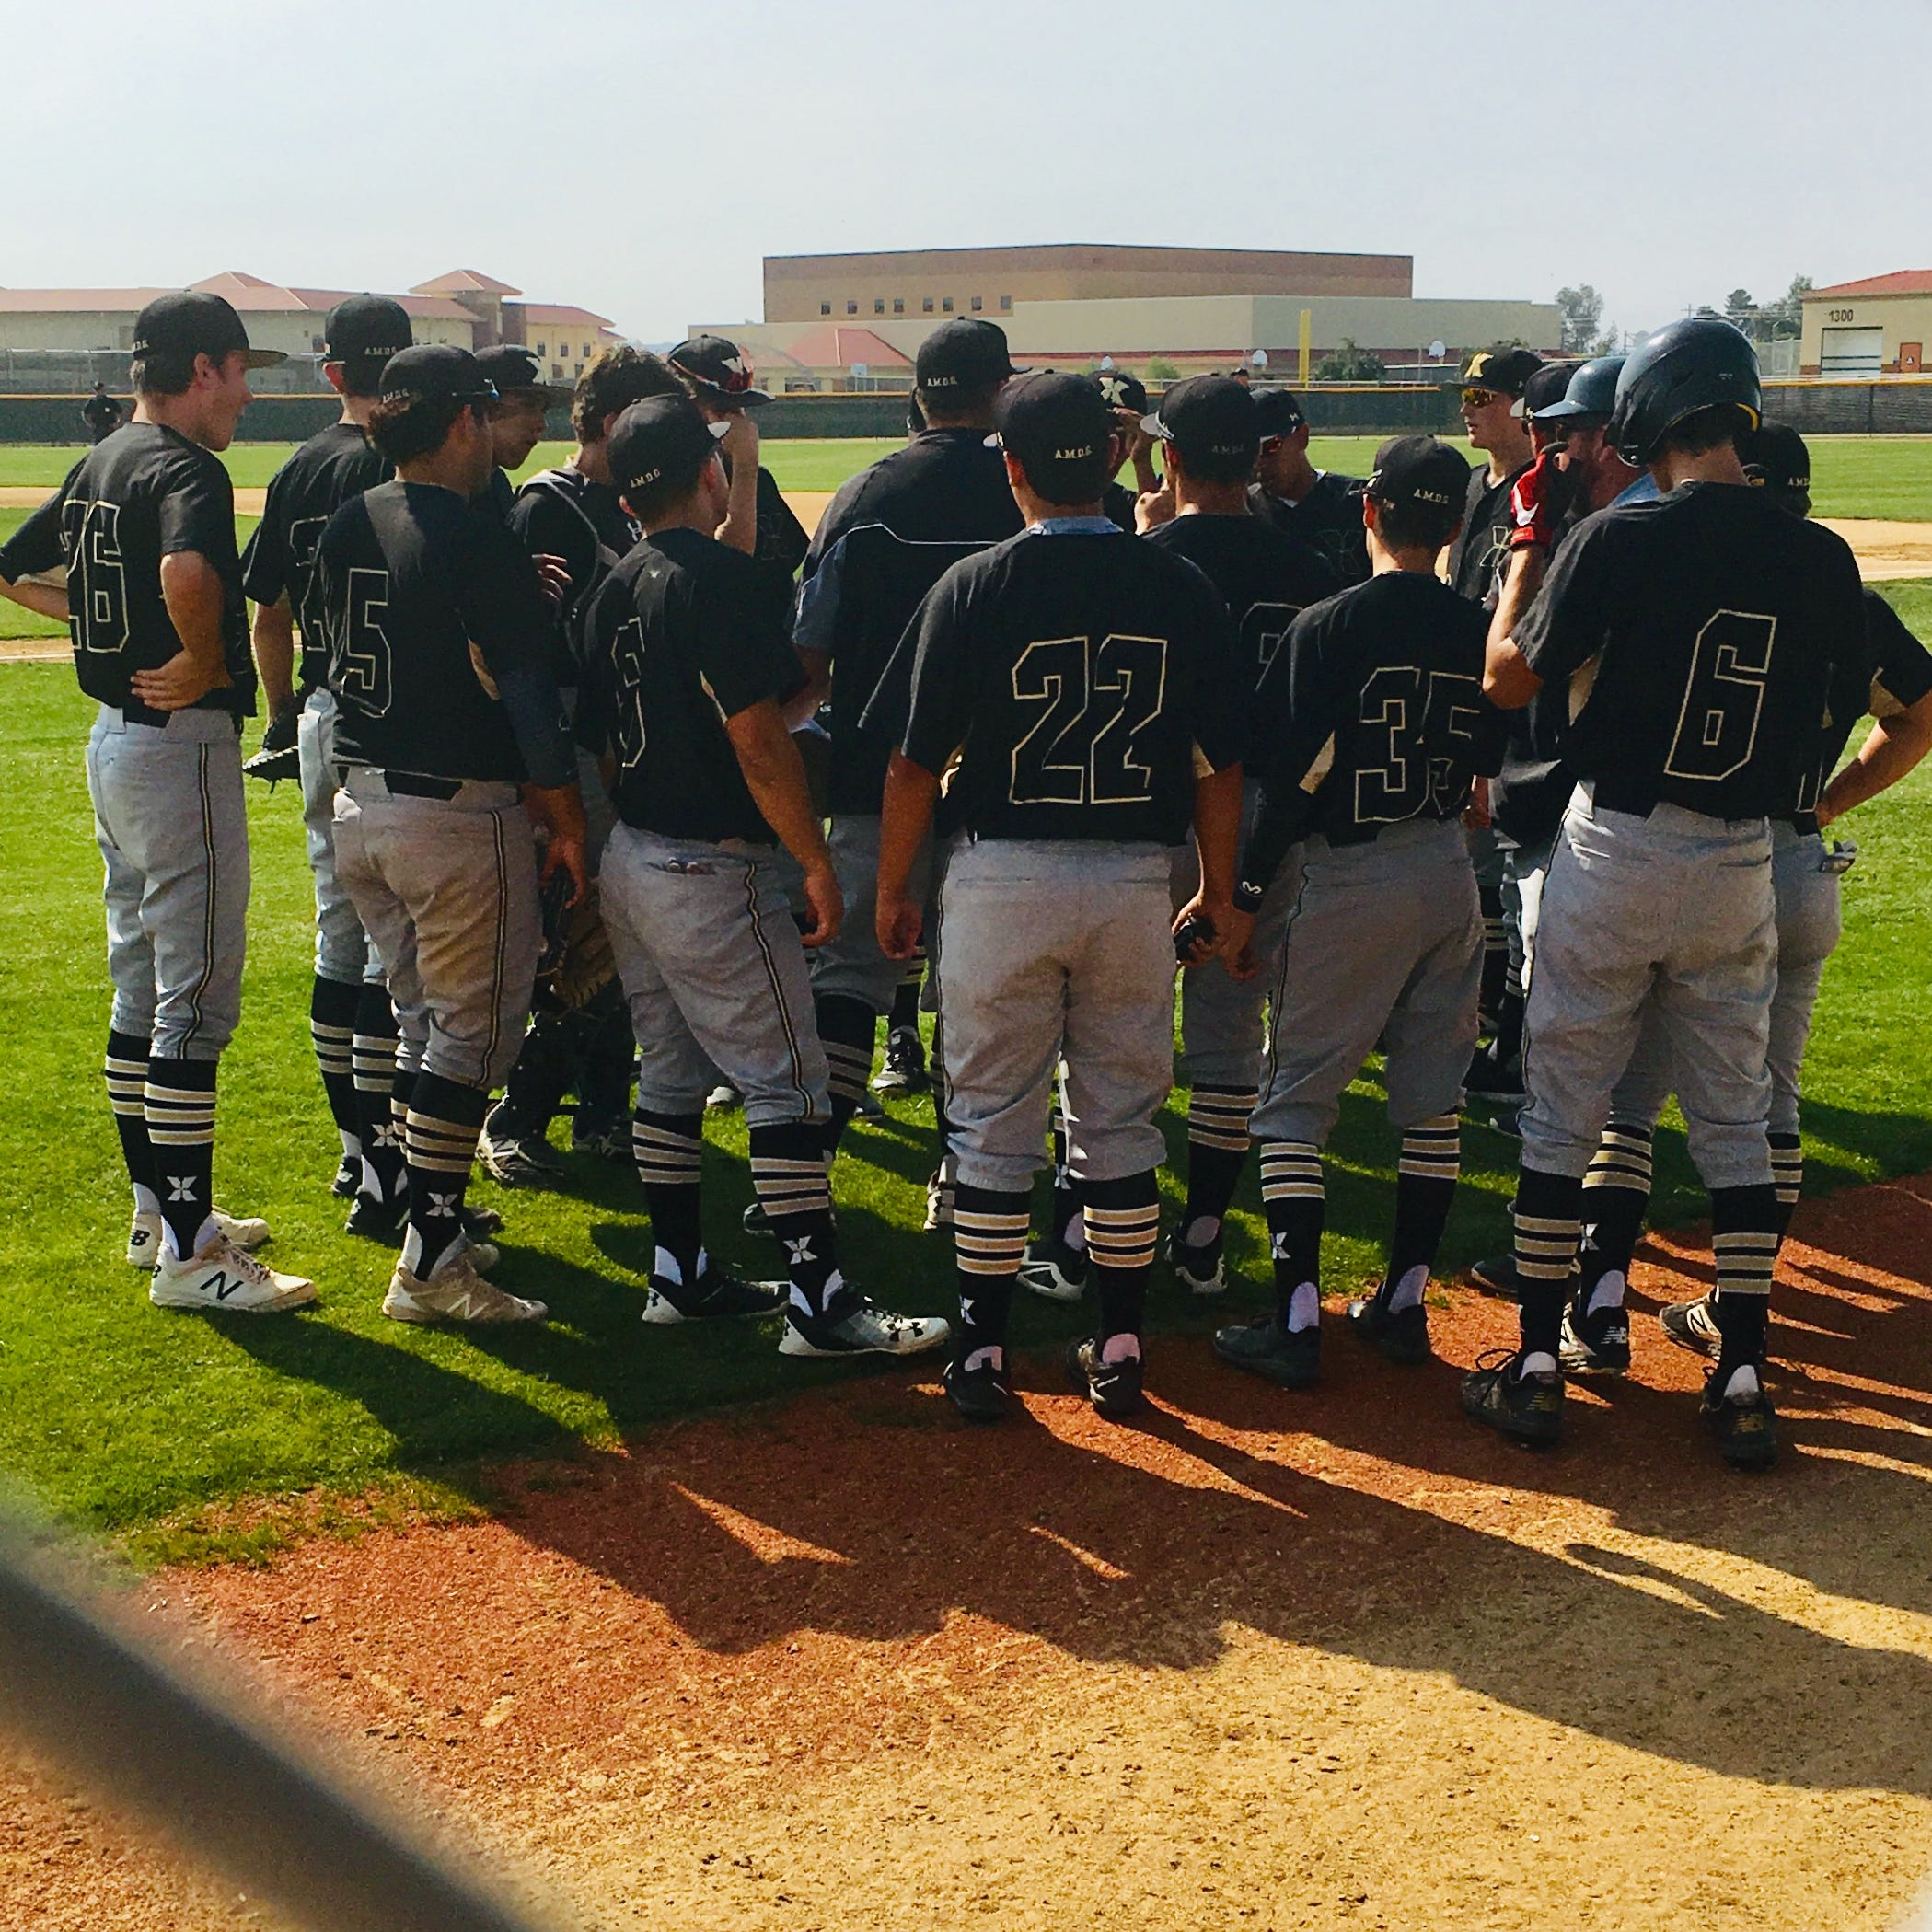 'This is our Disneyland moment!' Xavier Prep baseball marches into championship game